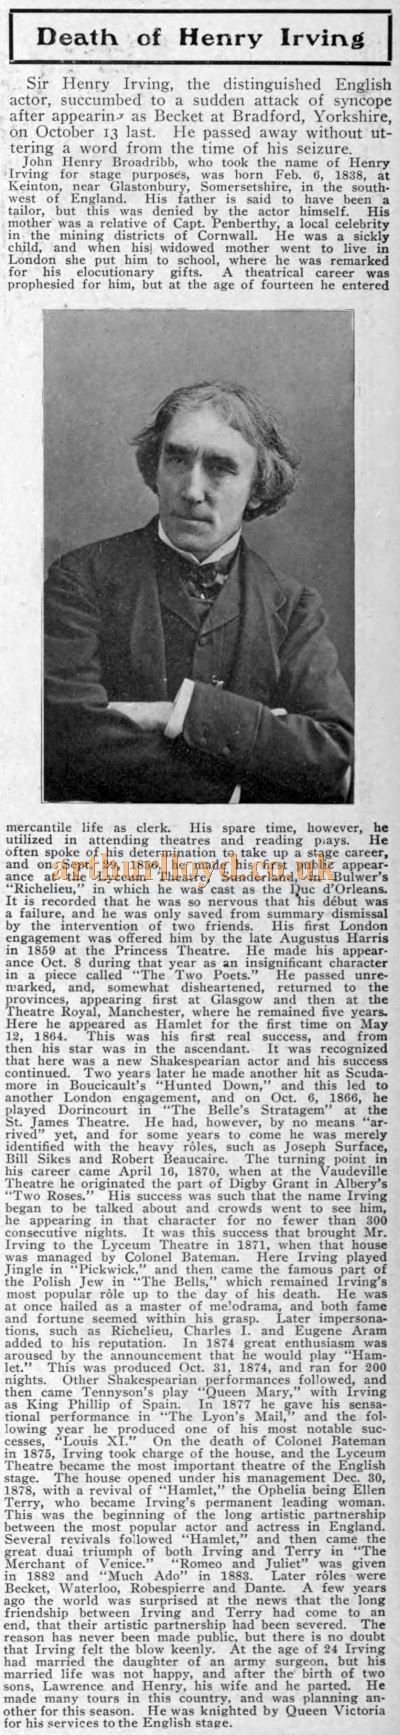 Henry Irving's Obituary - The Theatre Magazine Advertiser, October 1905.